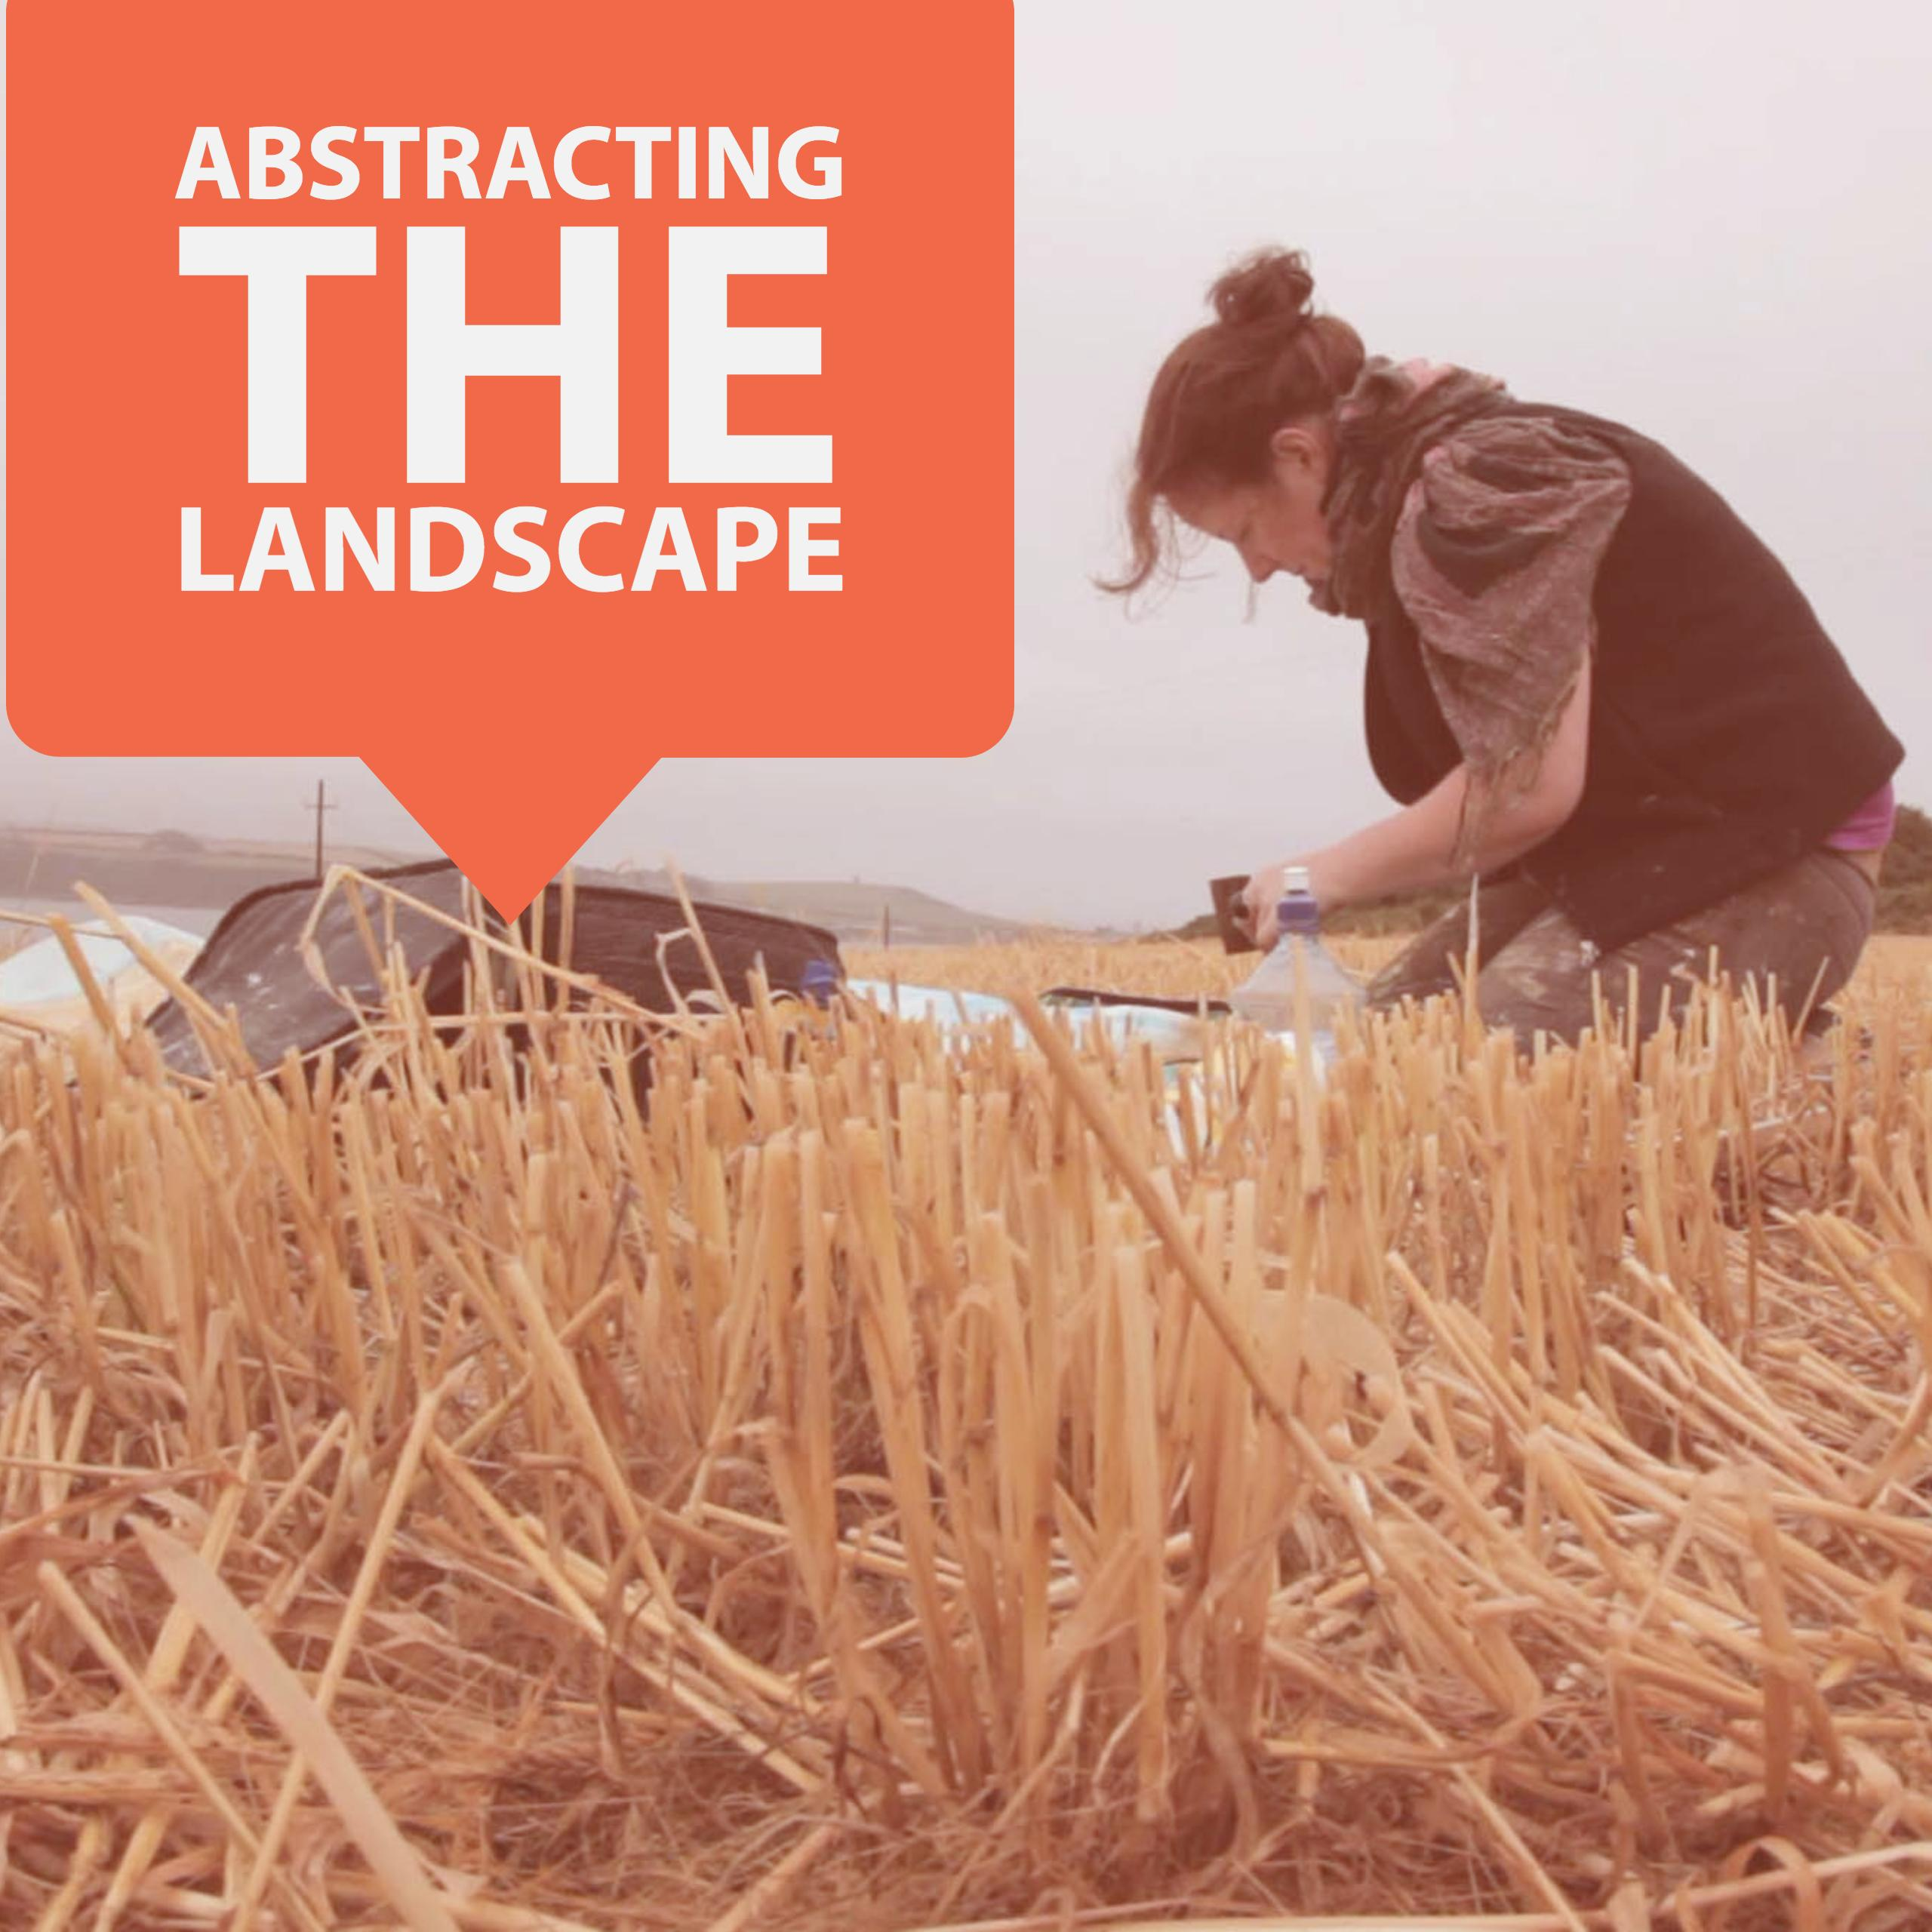 Abstracting the Landscape, Wexford 4th - 5th Nov 2017